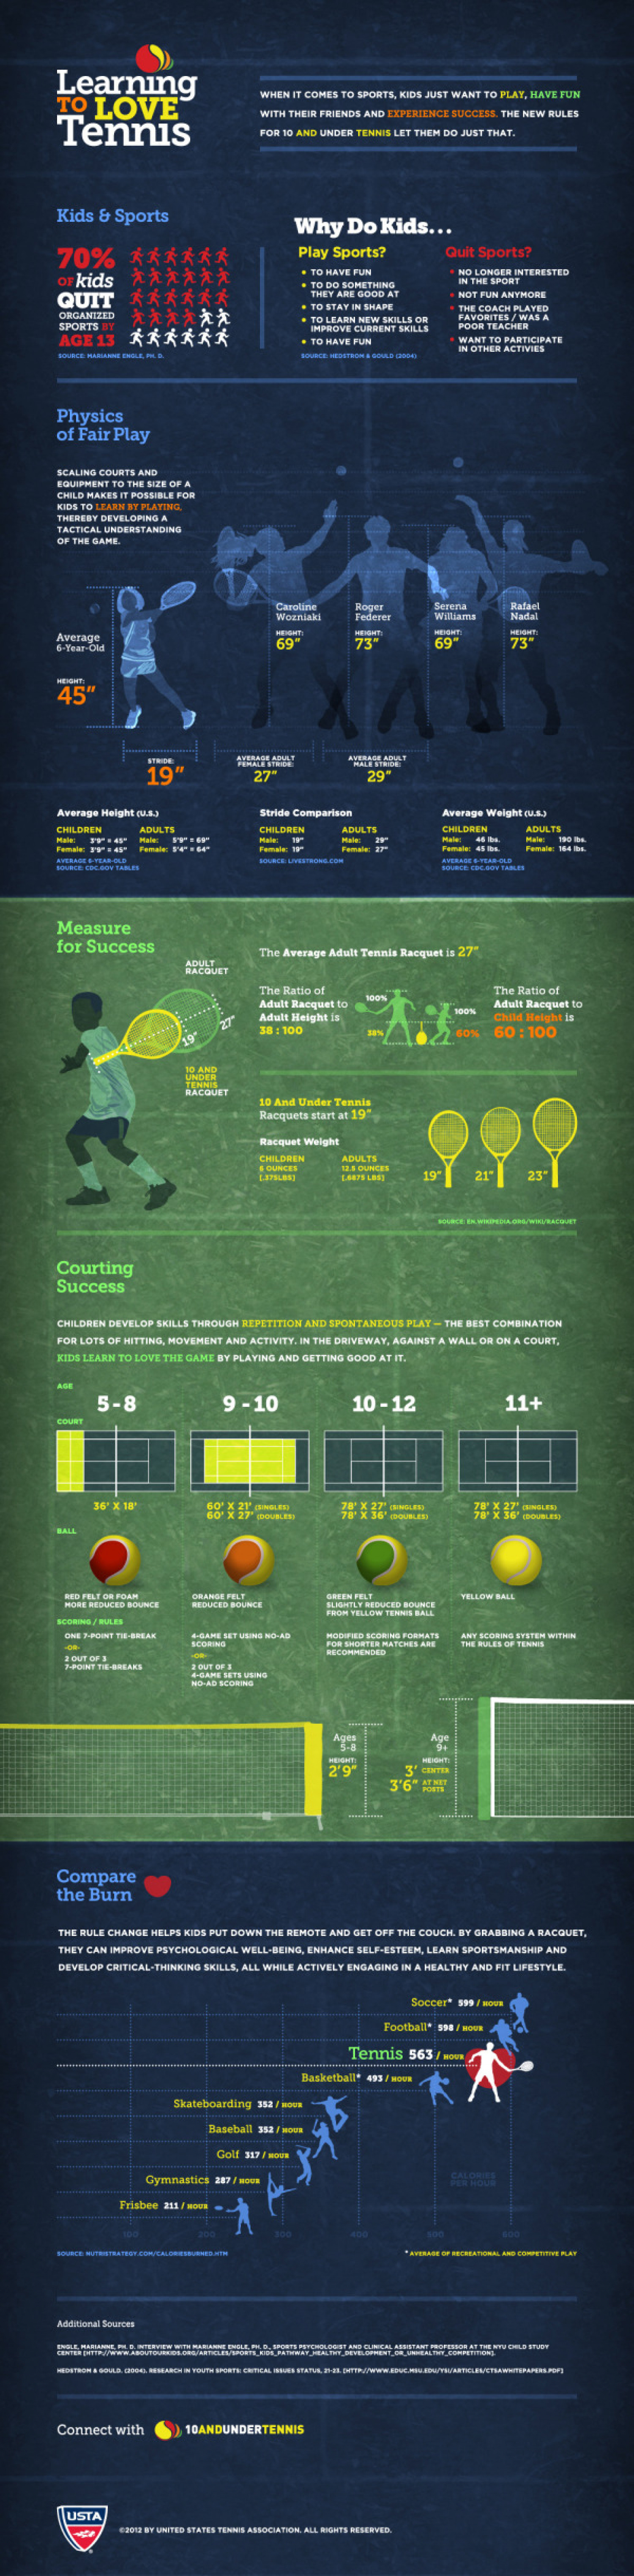 Learning to Love Tennis Infographic